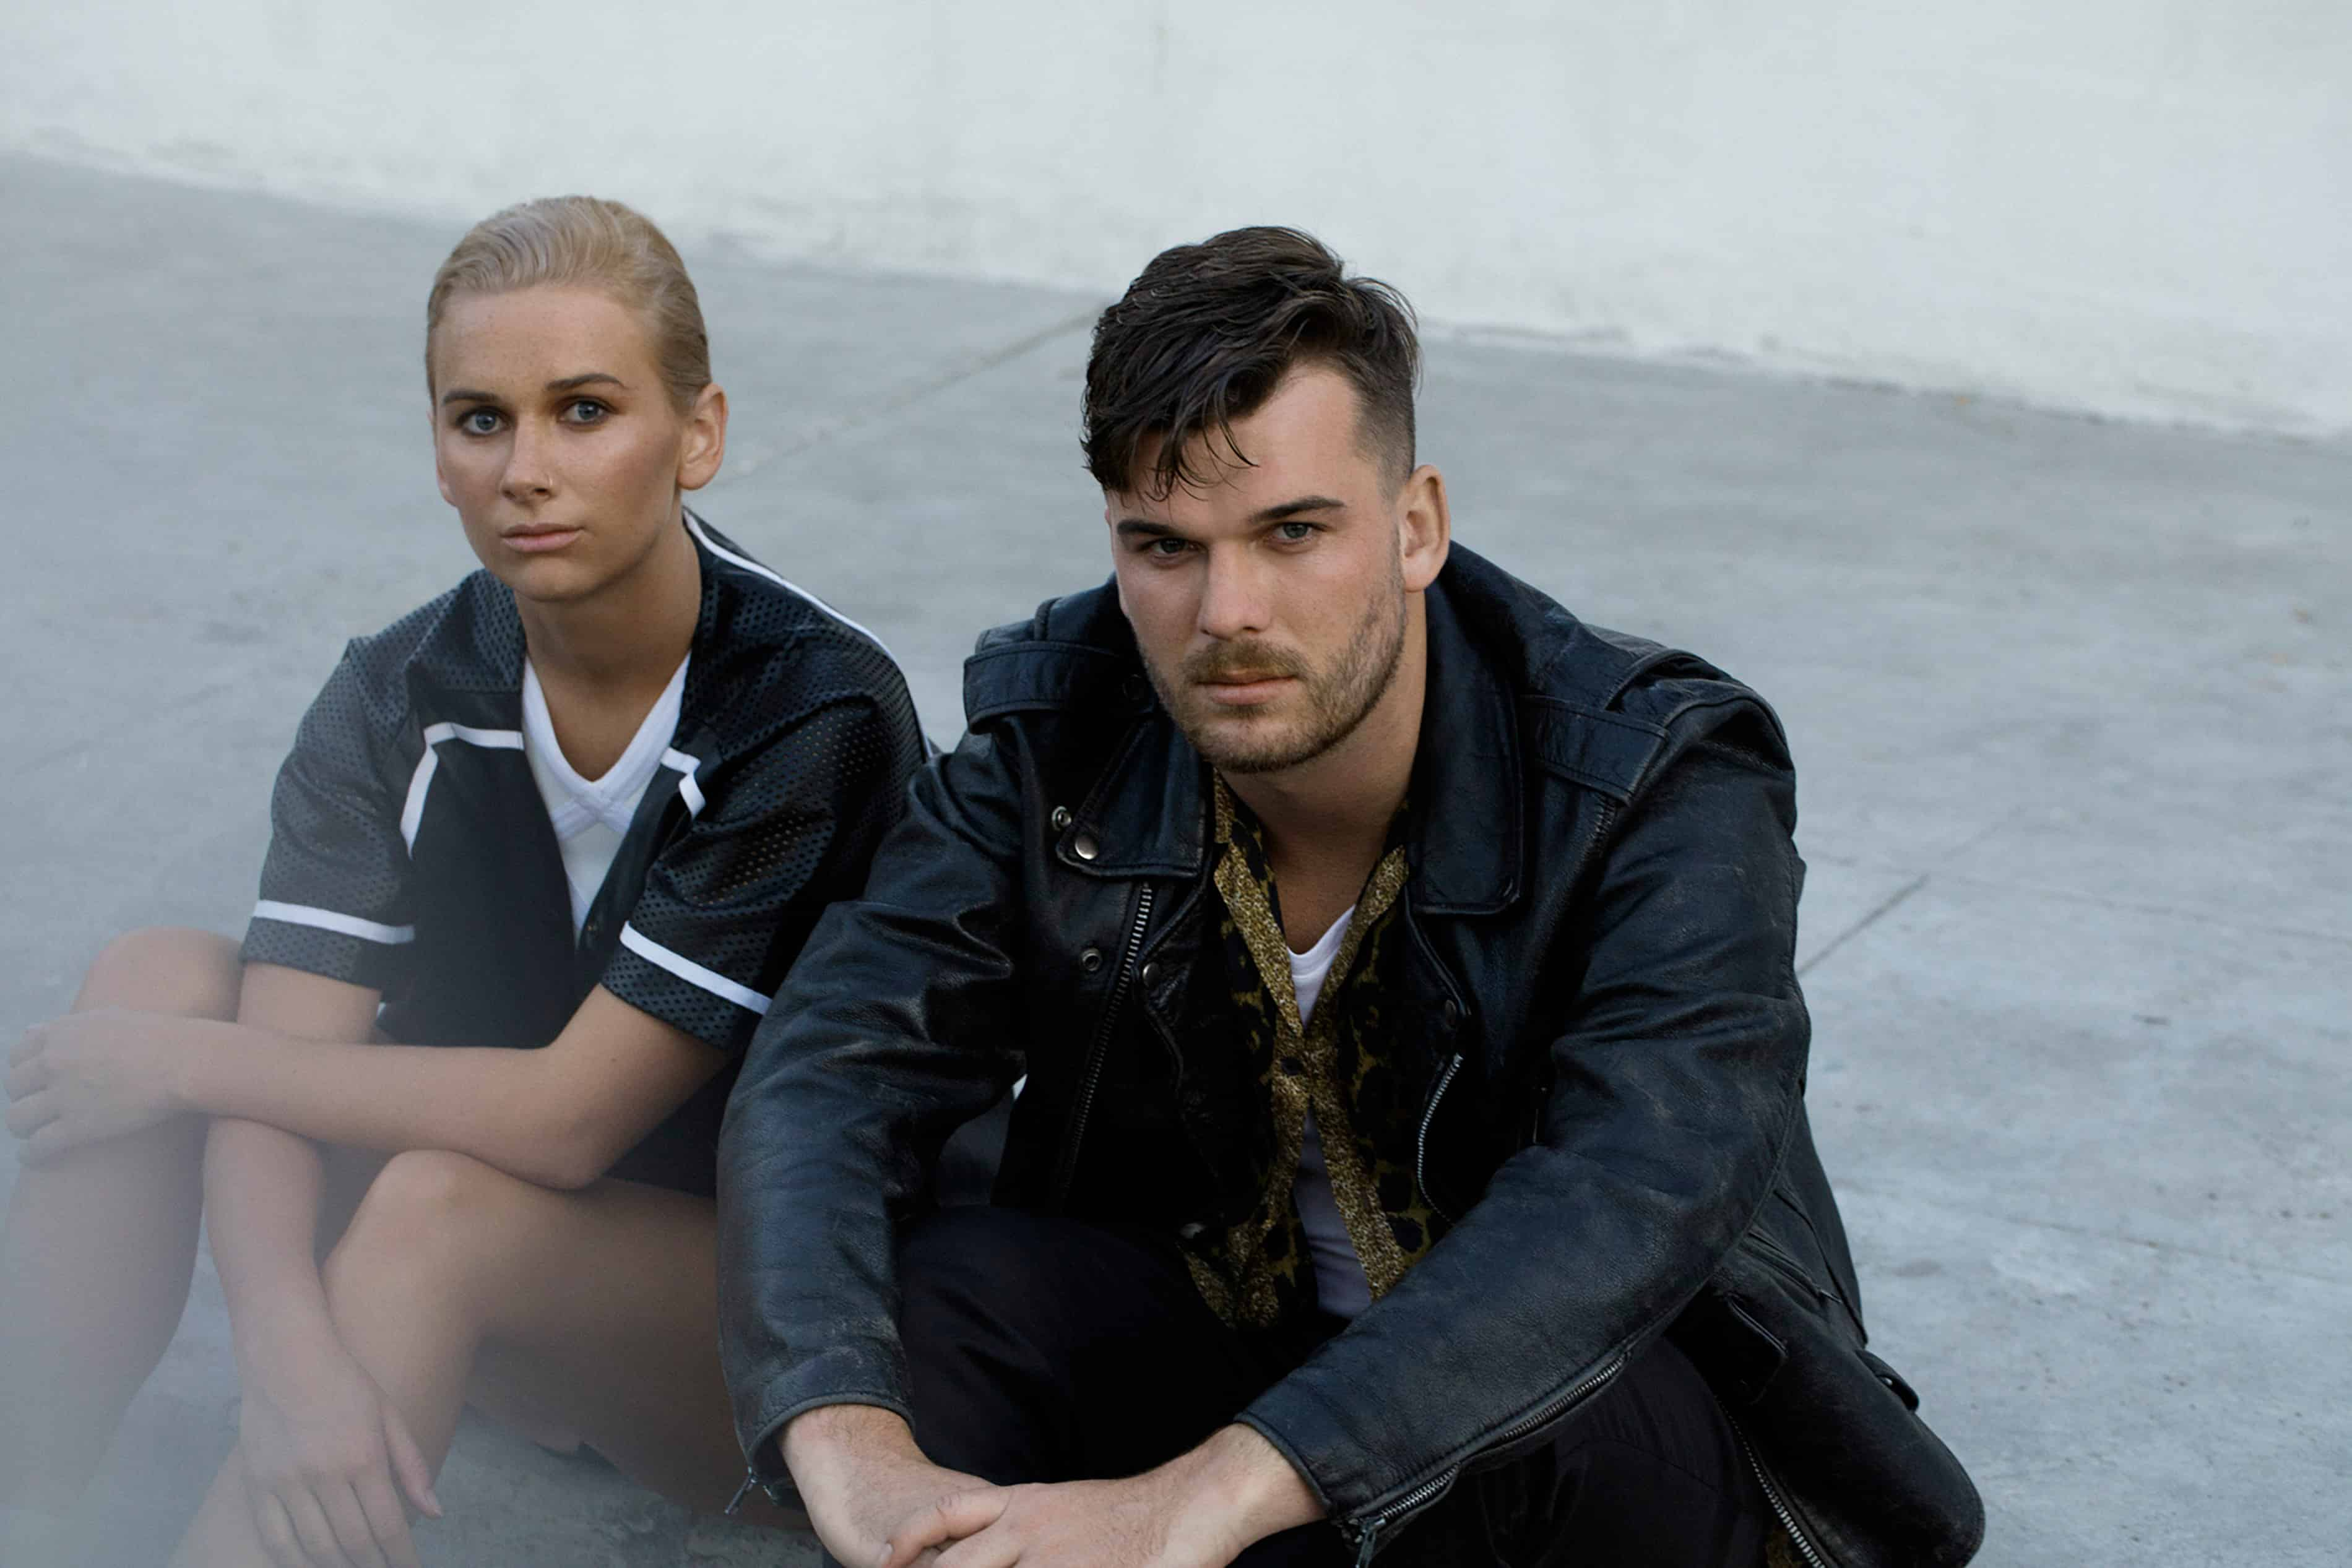 15 Minutes With Broods